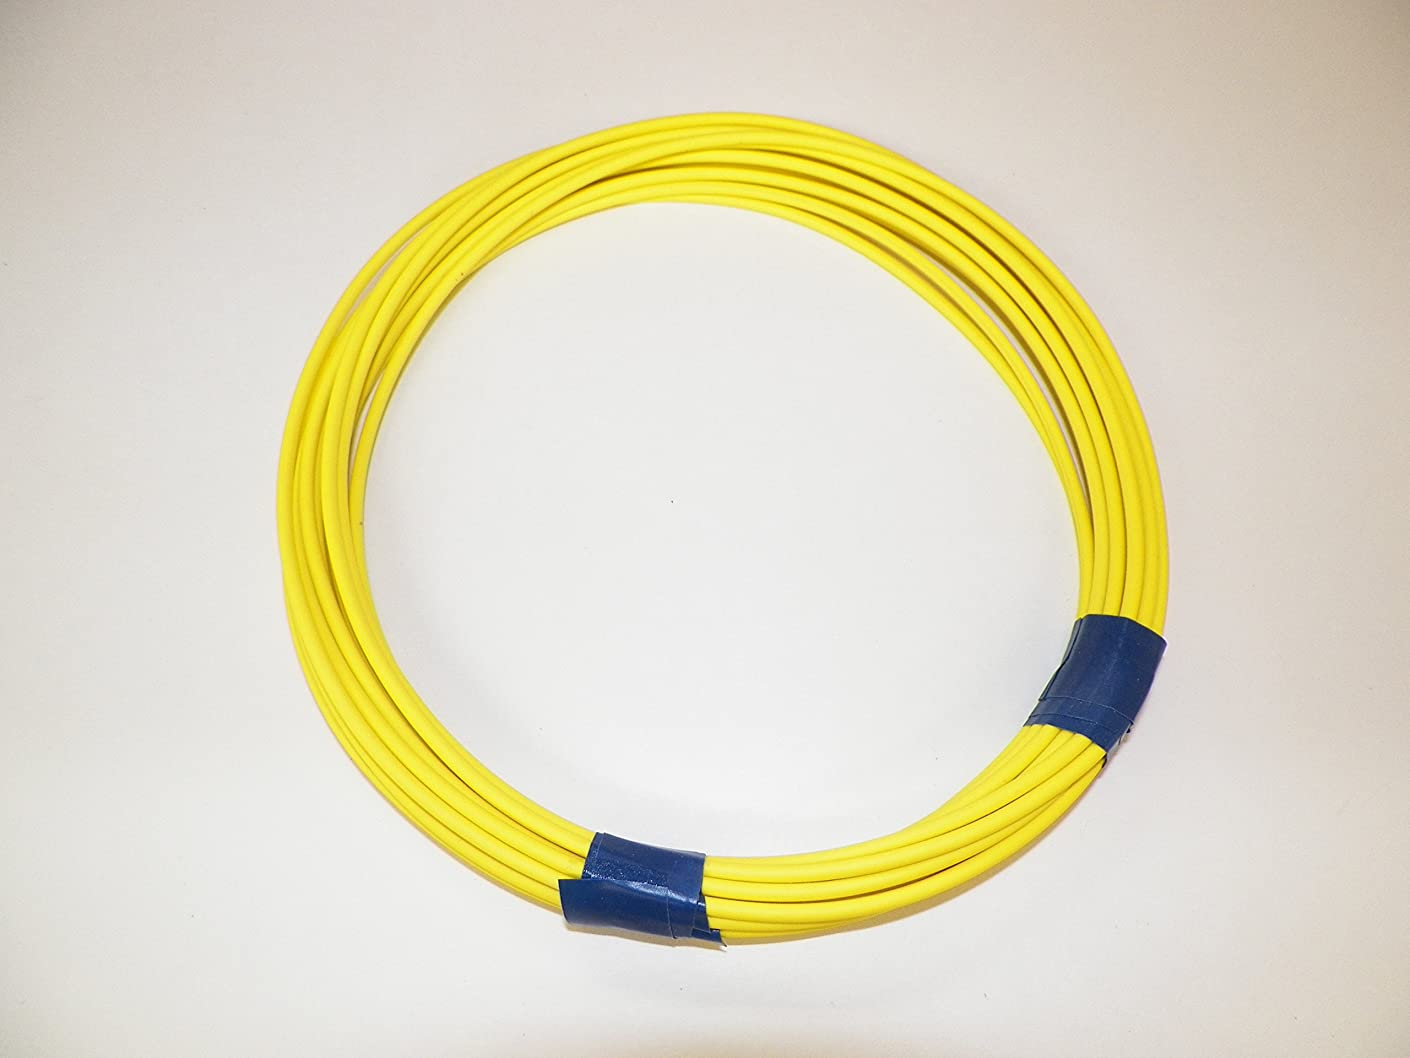 YELLOW Automotive GXL Copper Wire, 14 GA, AWG, GAUGE .116. High Heat, Resist Abrasions. For Truck, Motorcycle, RV. General Purpose. DEFFERENT LENGTHS AVAILABLE. (50 FOOT COIL)